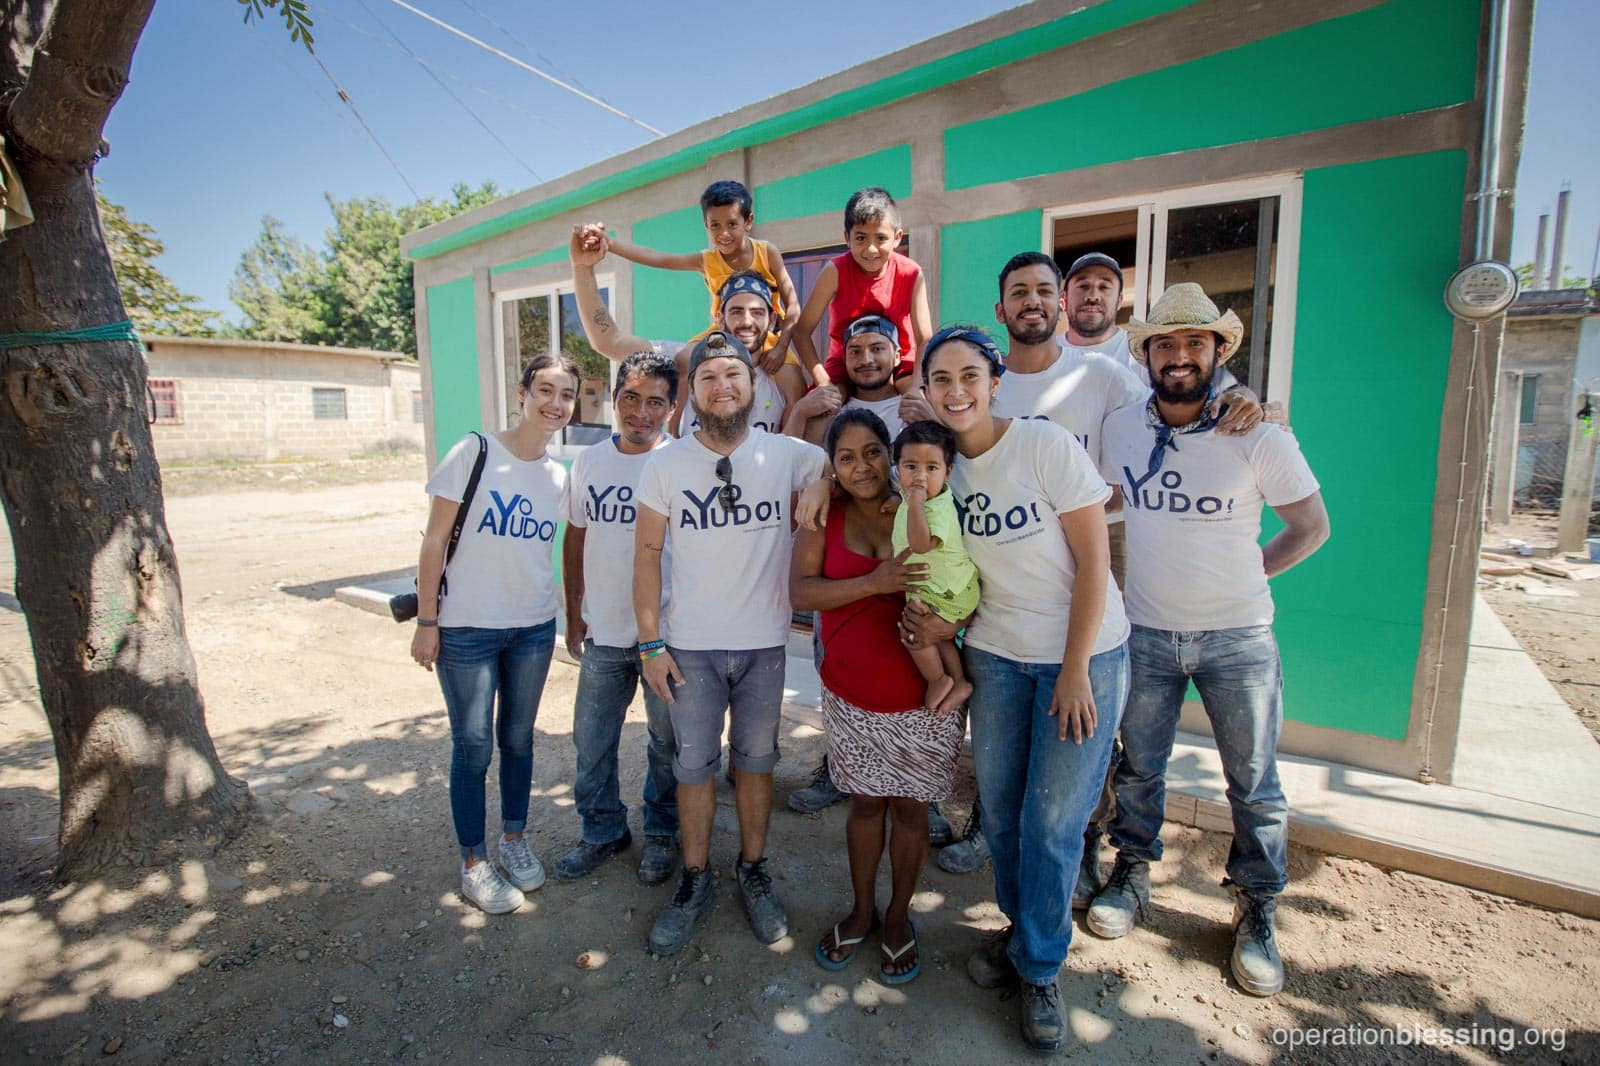 Luzbeth and her family pose with the Operation Blessing construction crew in front of their new home.